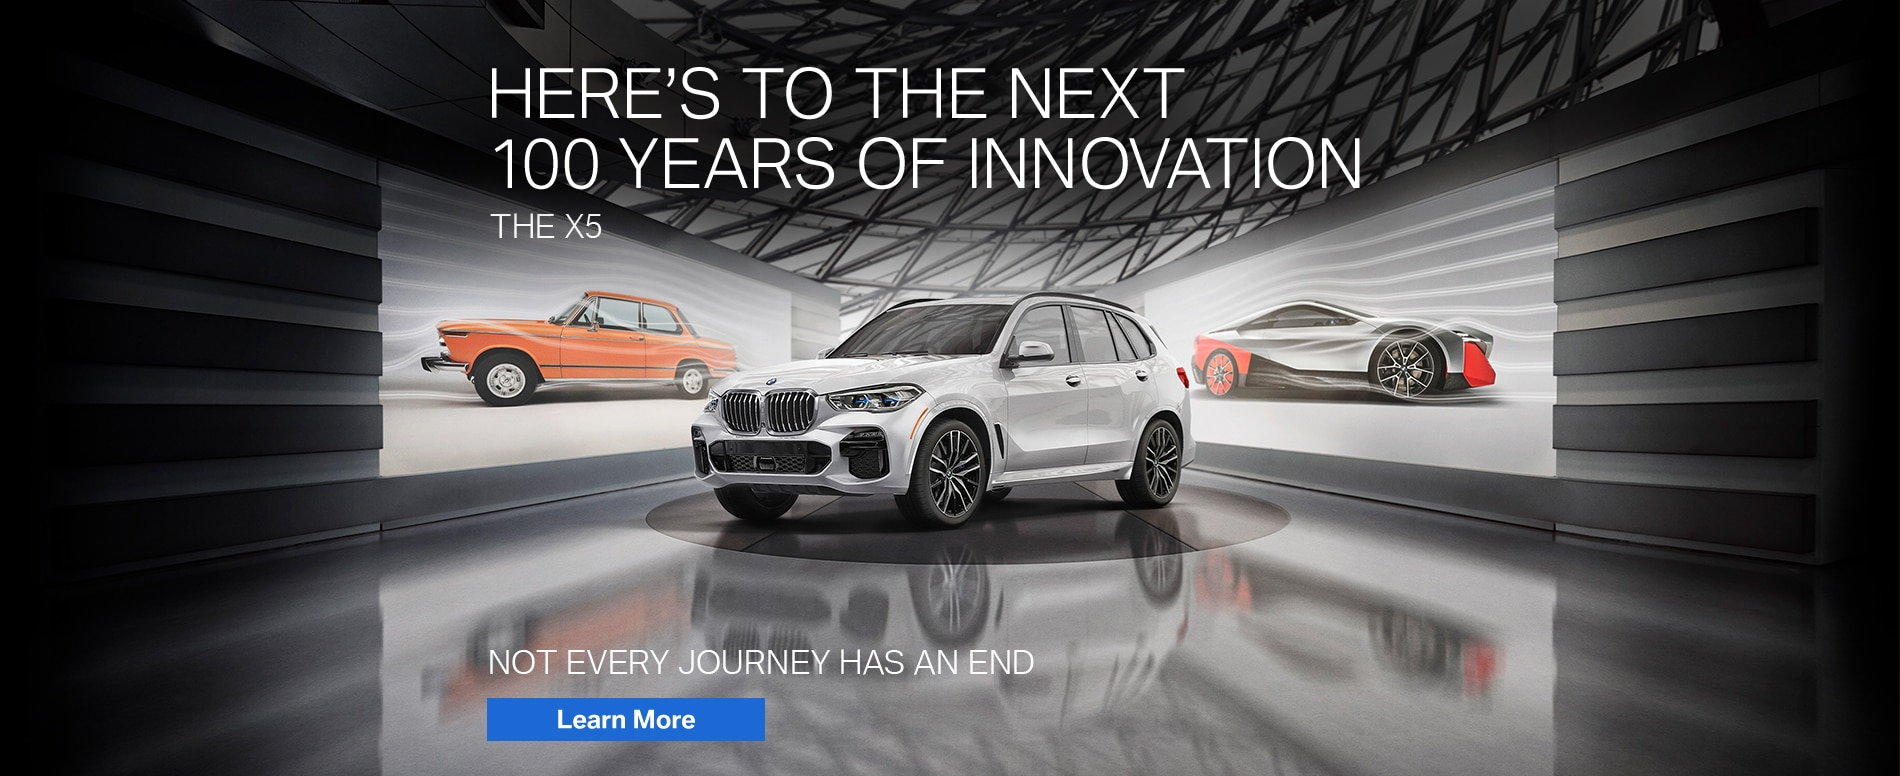 Herb Chambers BMW | New & Used BMW Dealership in Boston, MA